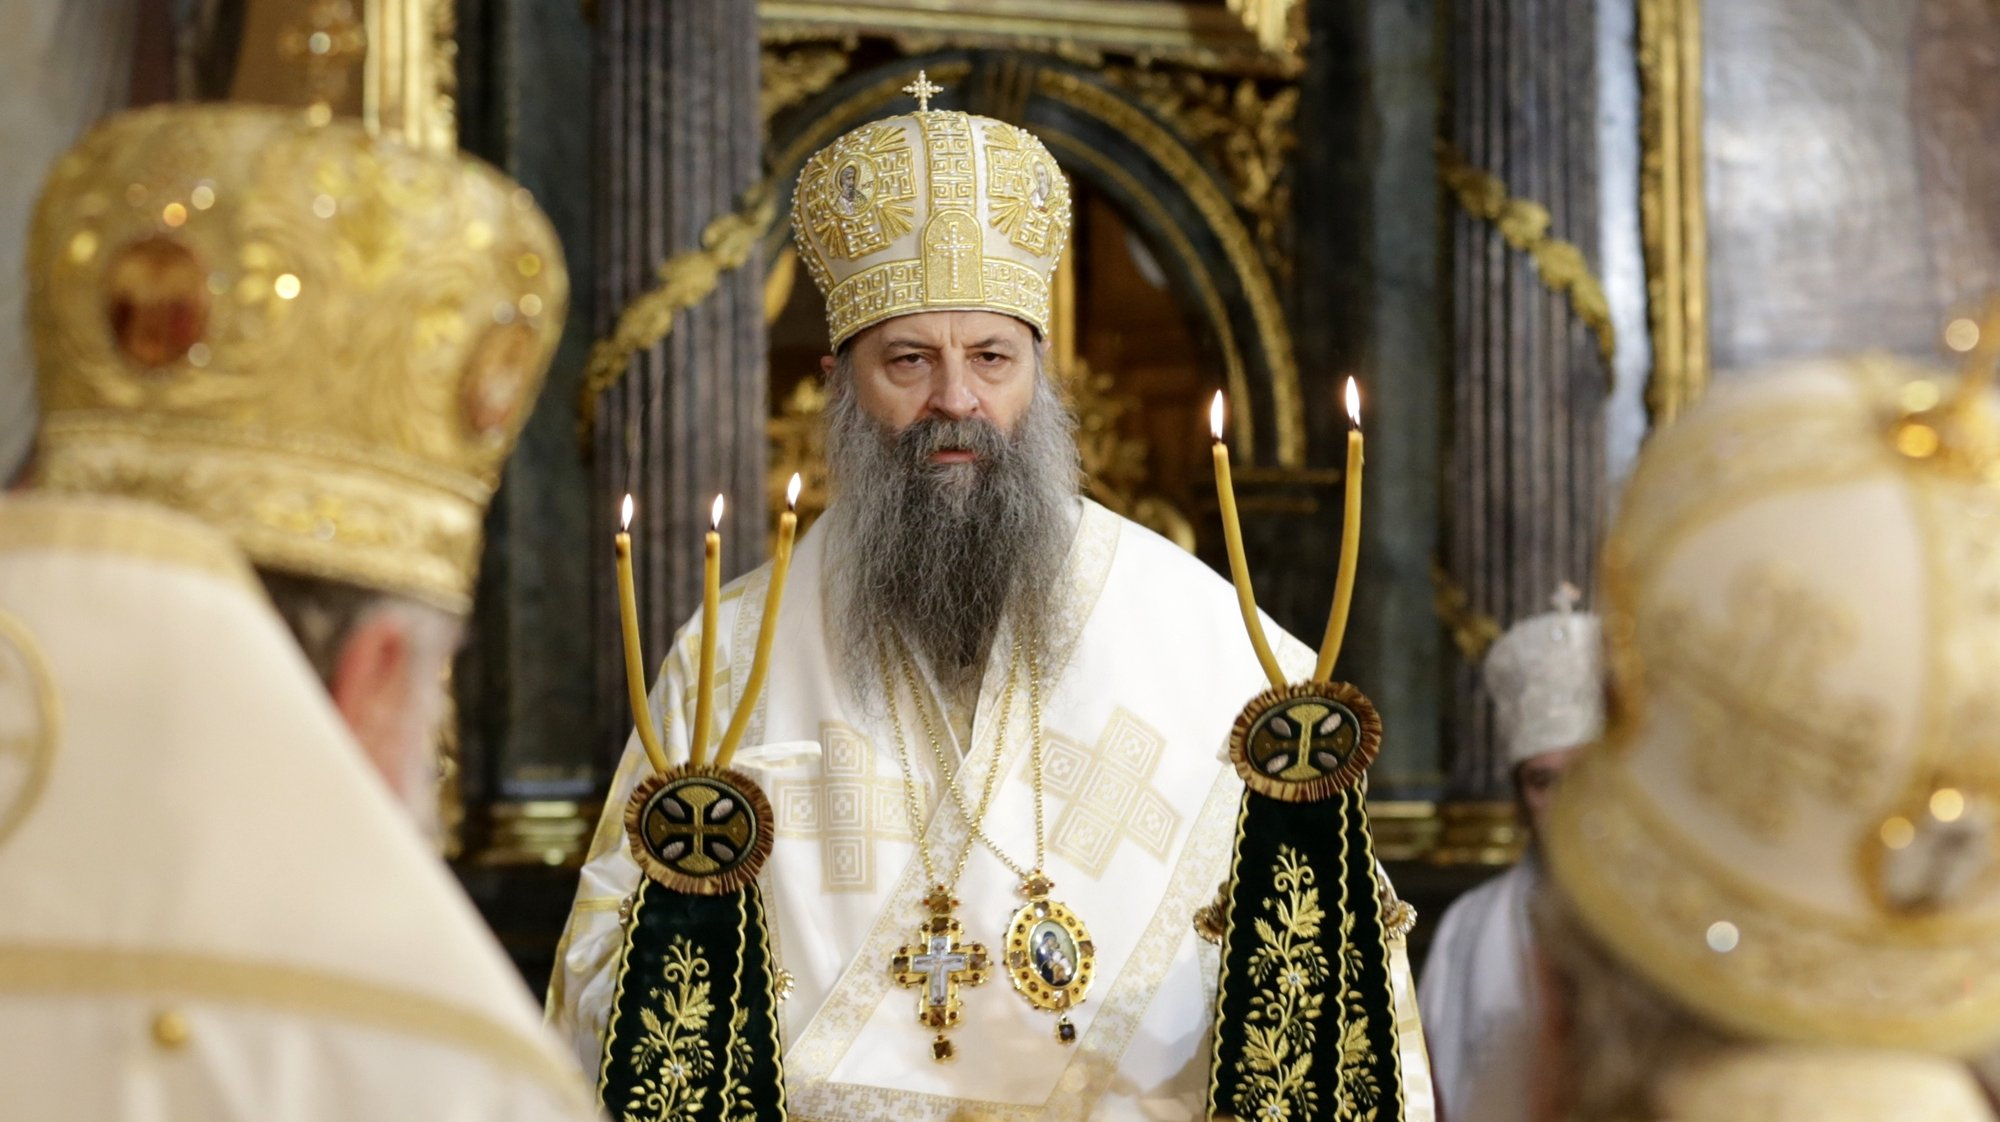 epa09023354 The new head of the Serbian Orthodox Church, Patriarch Porfirije leads a mass in Belgrade, Serbia, 19 February 2021. Serbian Orthodox Church enthroned its 46th leader after he was elected on 18 February 2021.  EPA/ANDREJ CUKIC